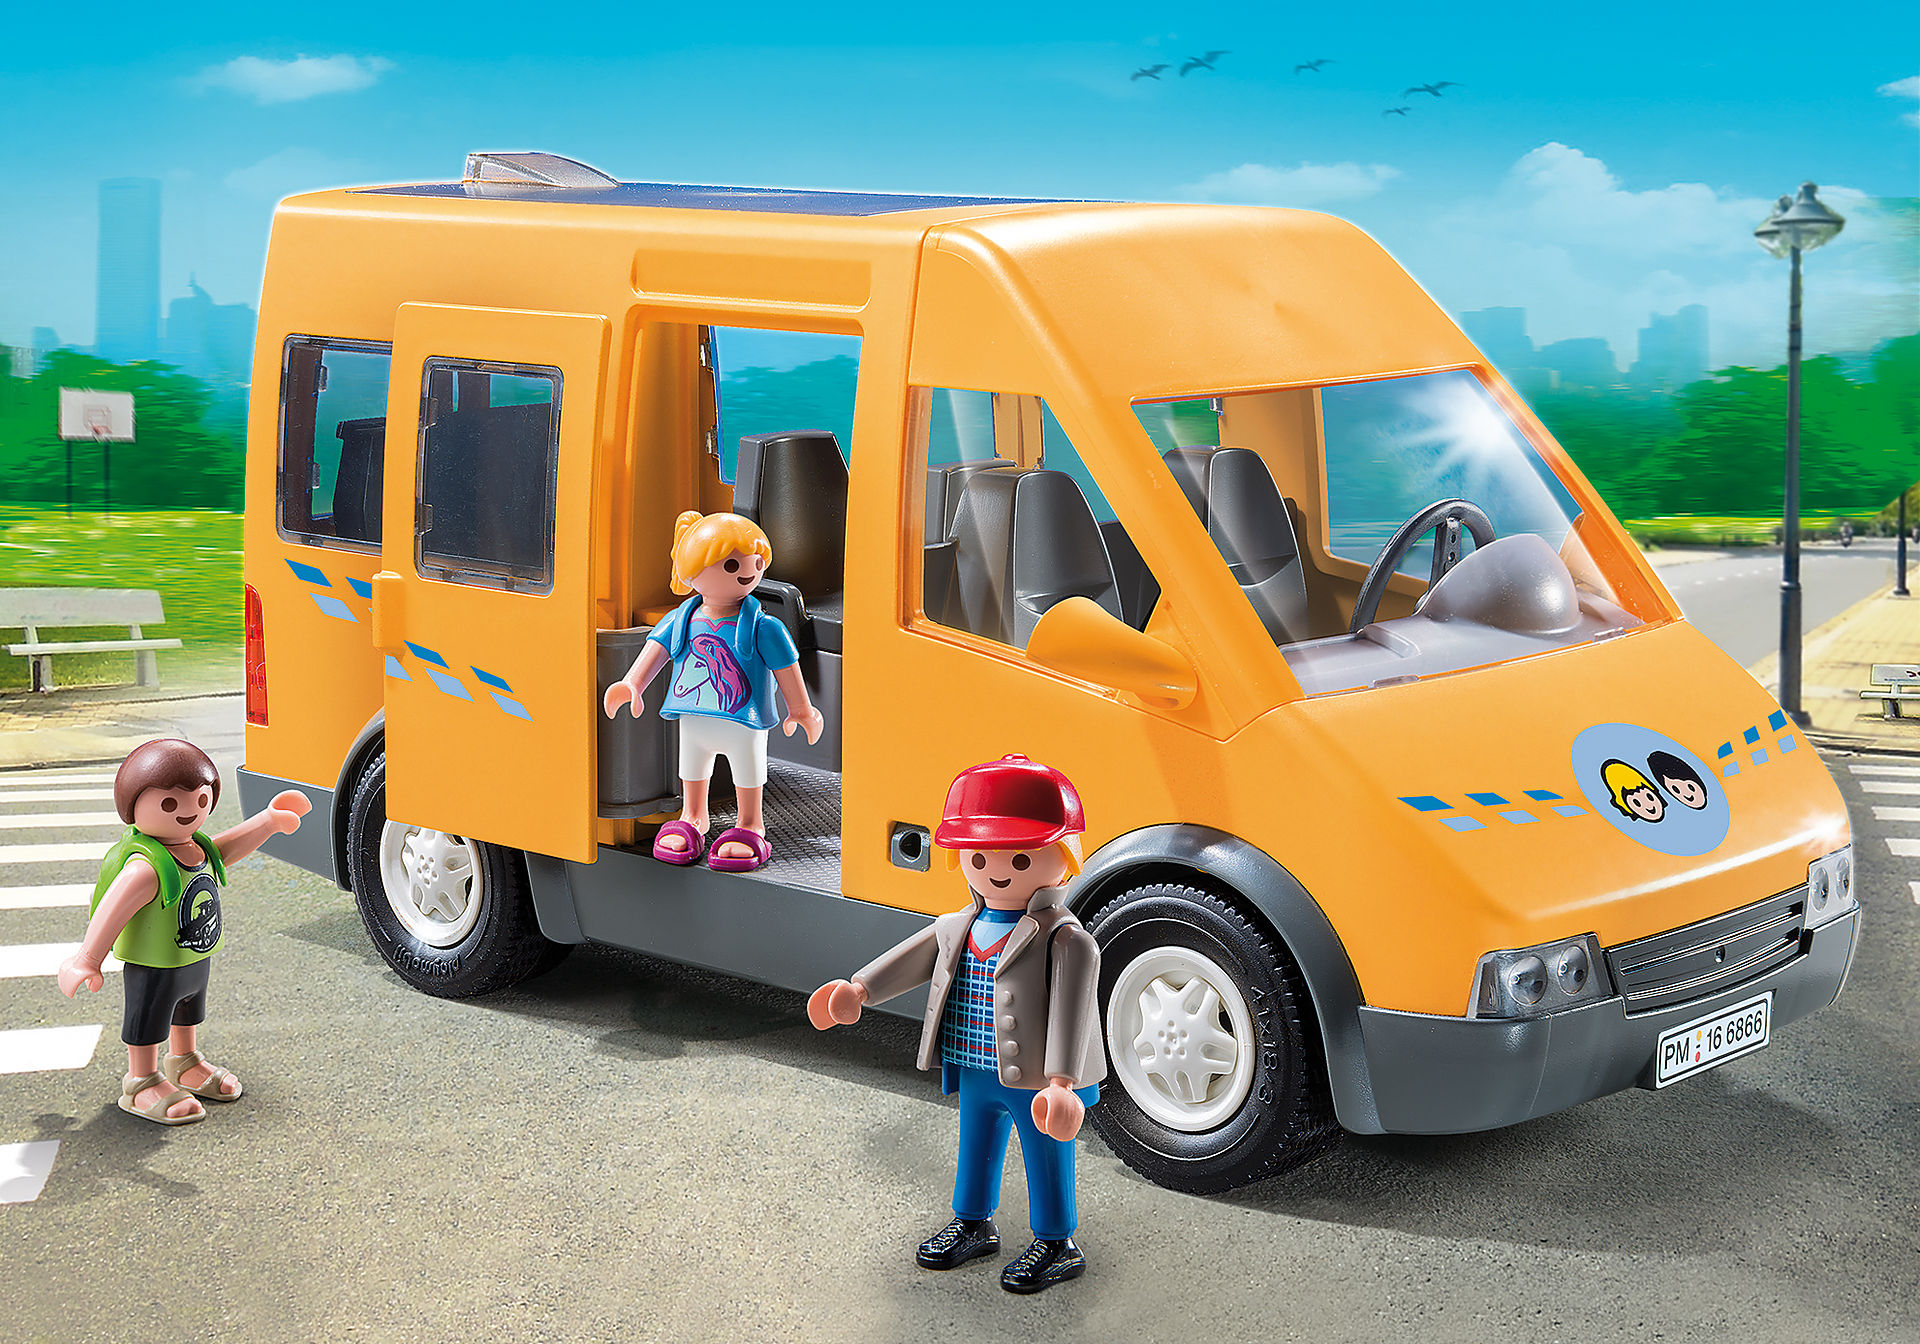 http://media.playmobil.com/i/playmobil/6866_product_detail/Scuolabus